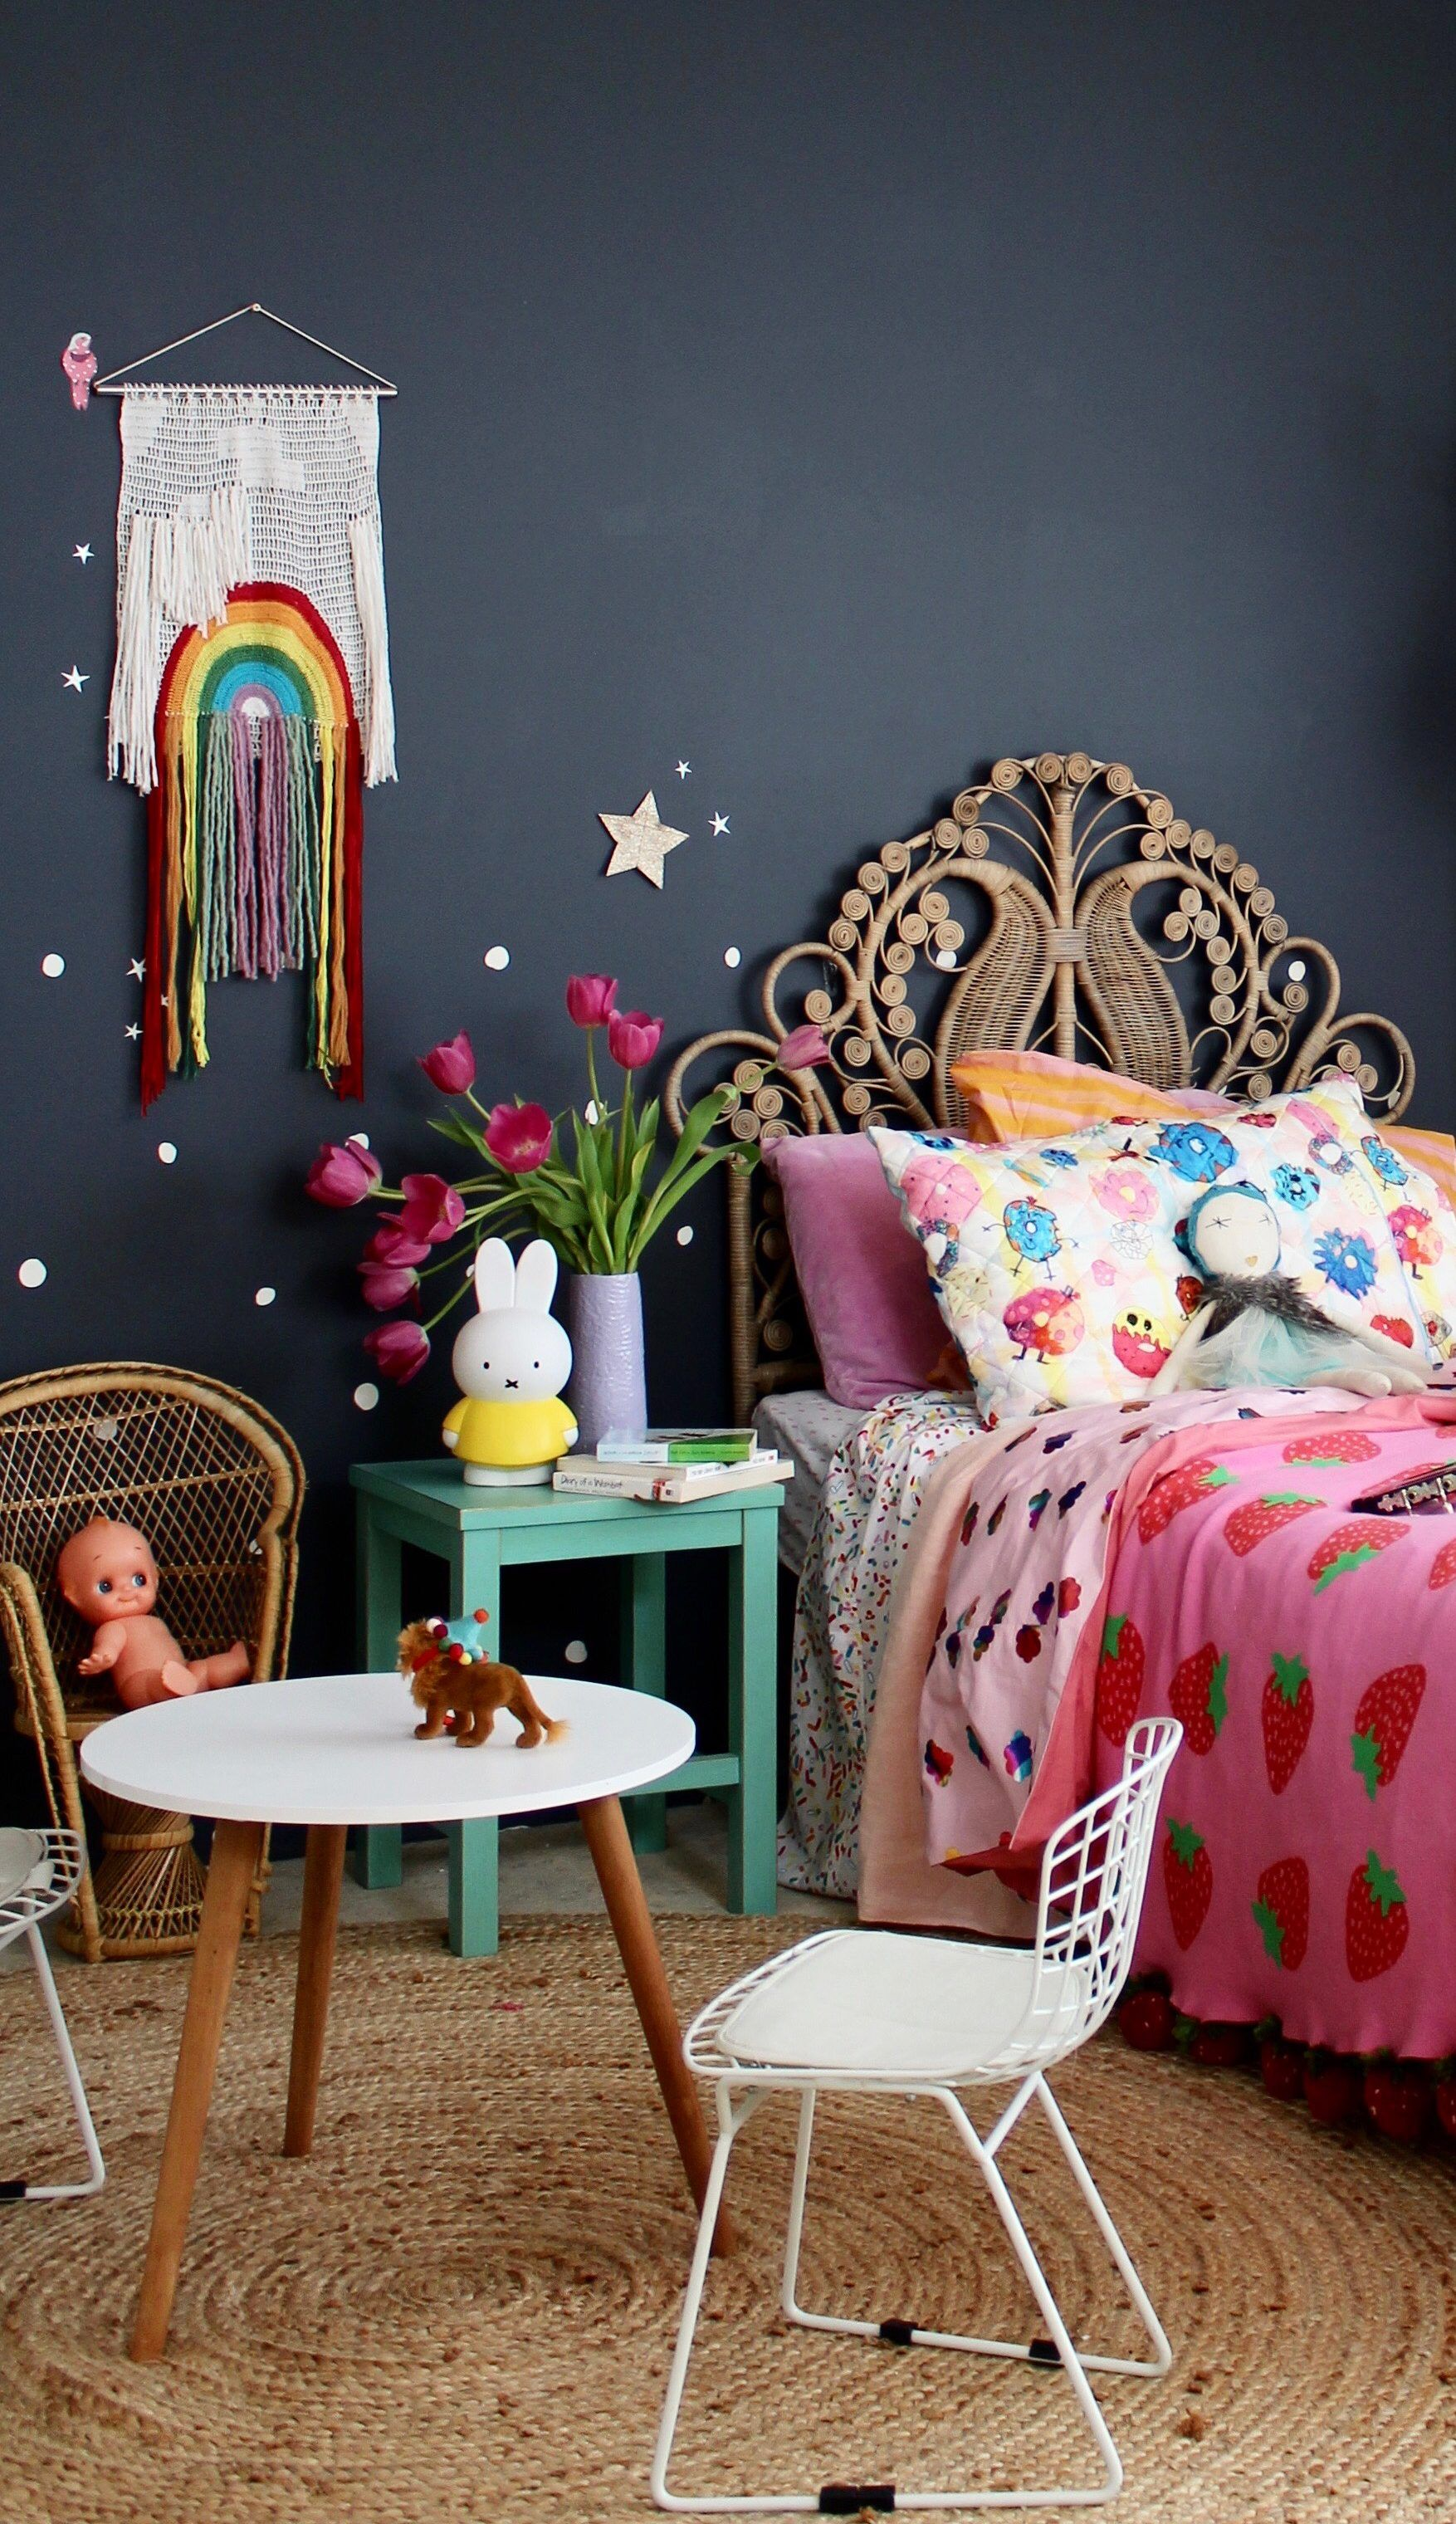 Trending now boho vintage kids 39 spaces decor - Wall decoration ideas for bedrooms ...